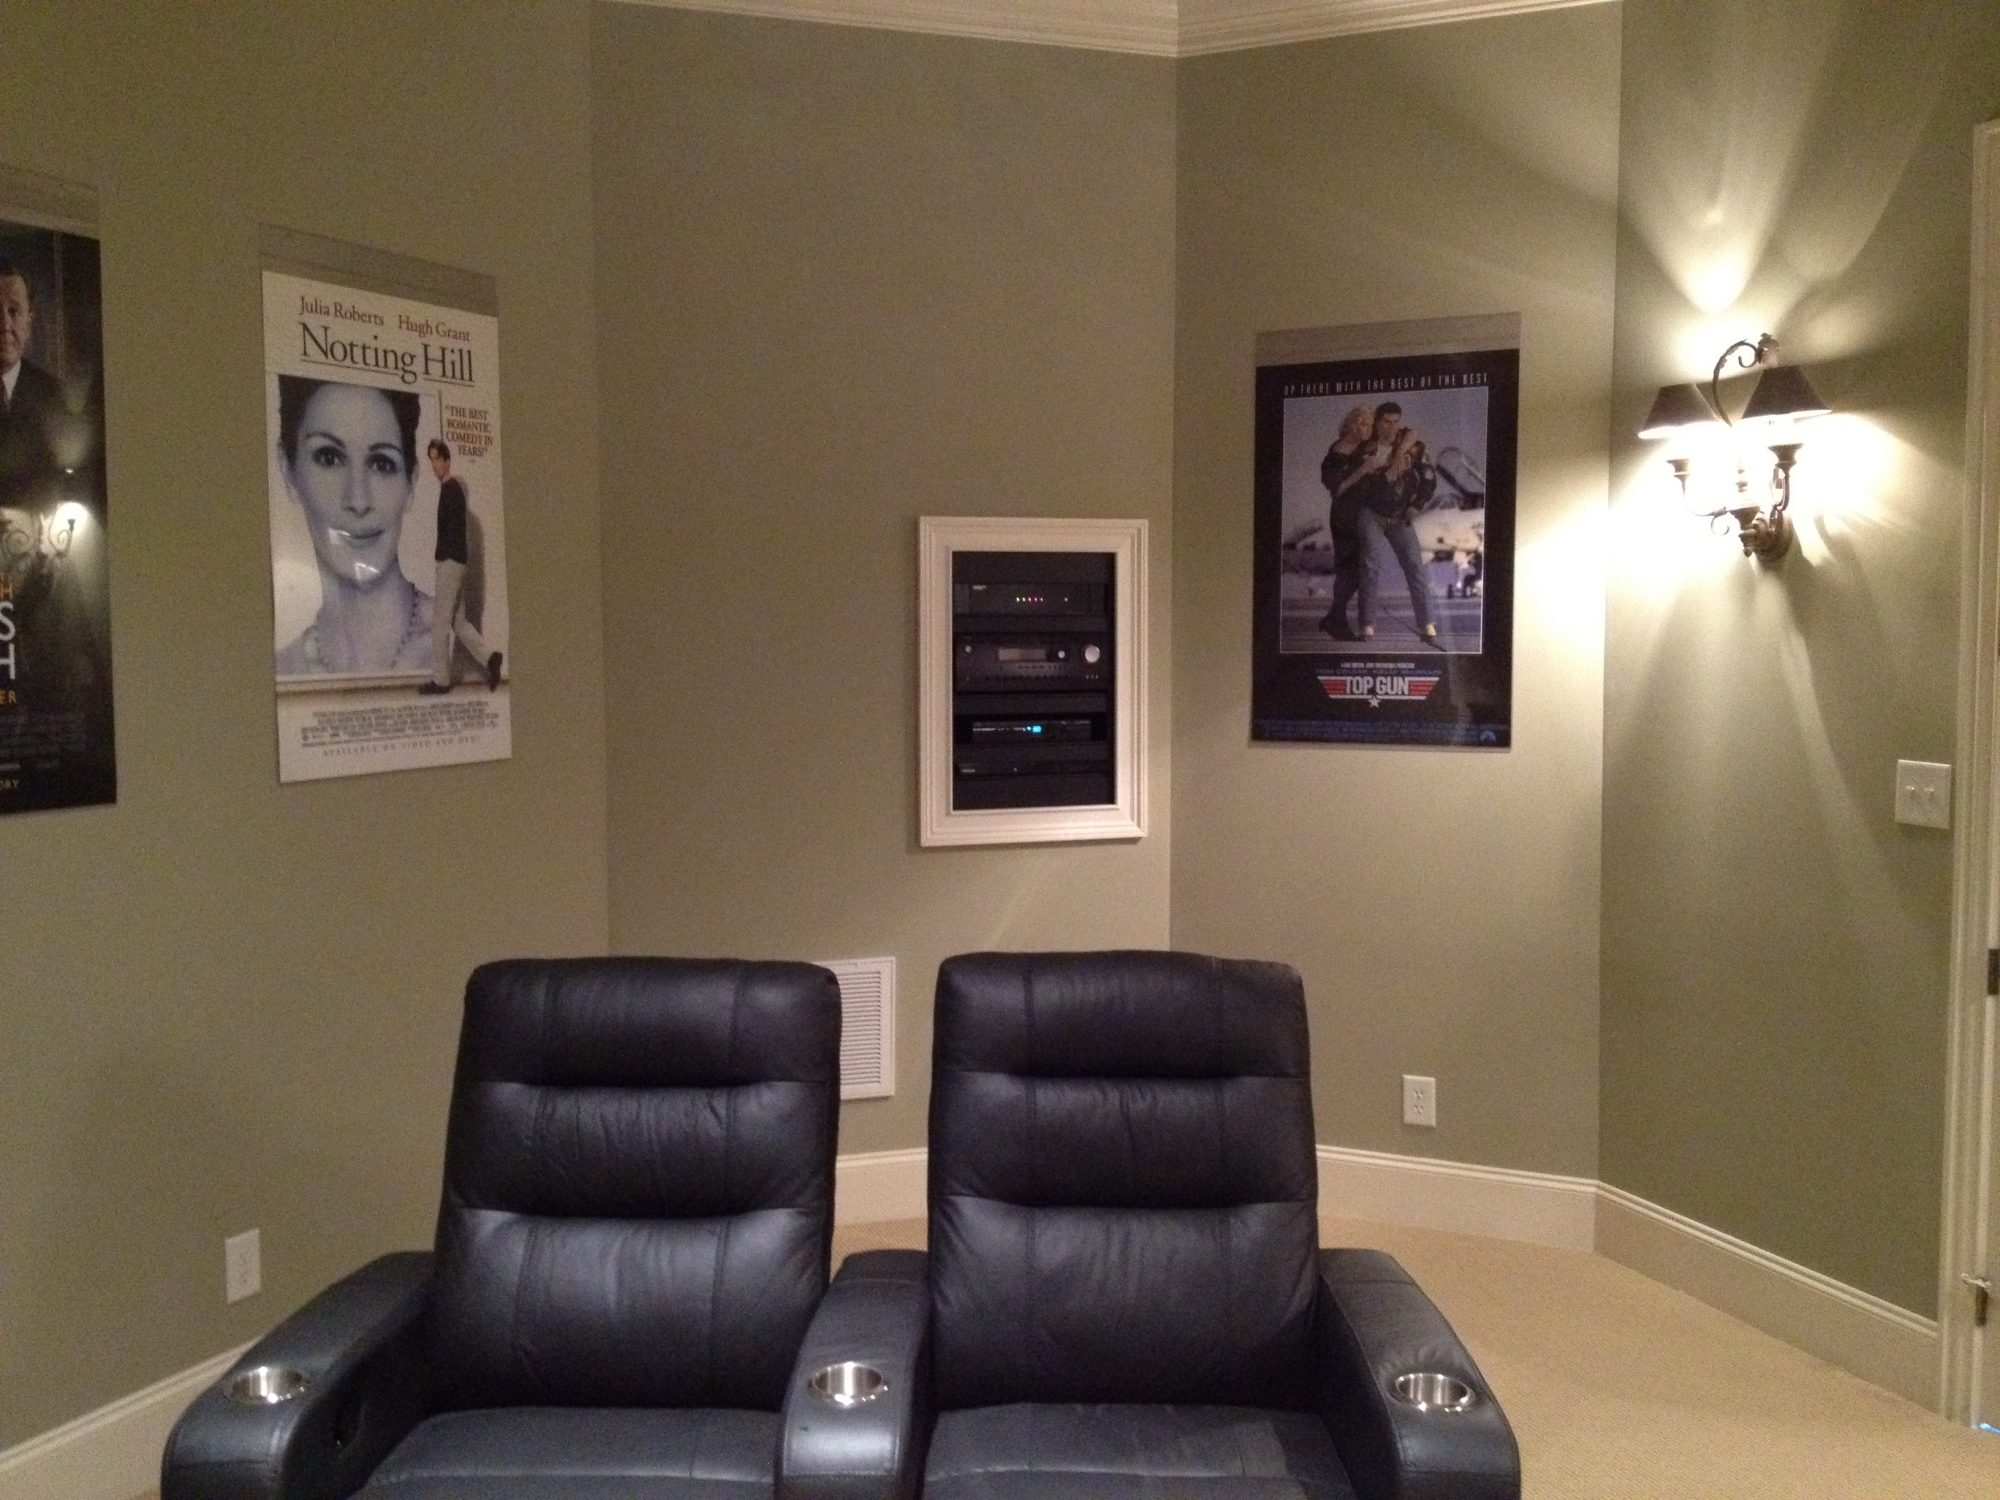 recliners-in-home-theater-room